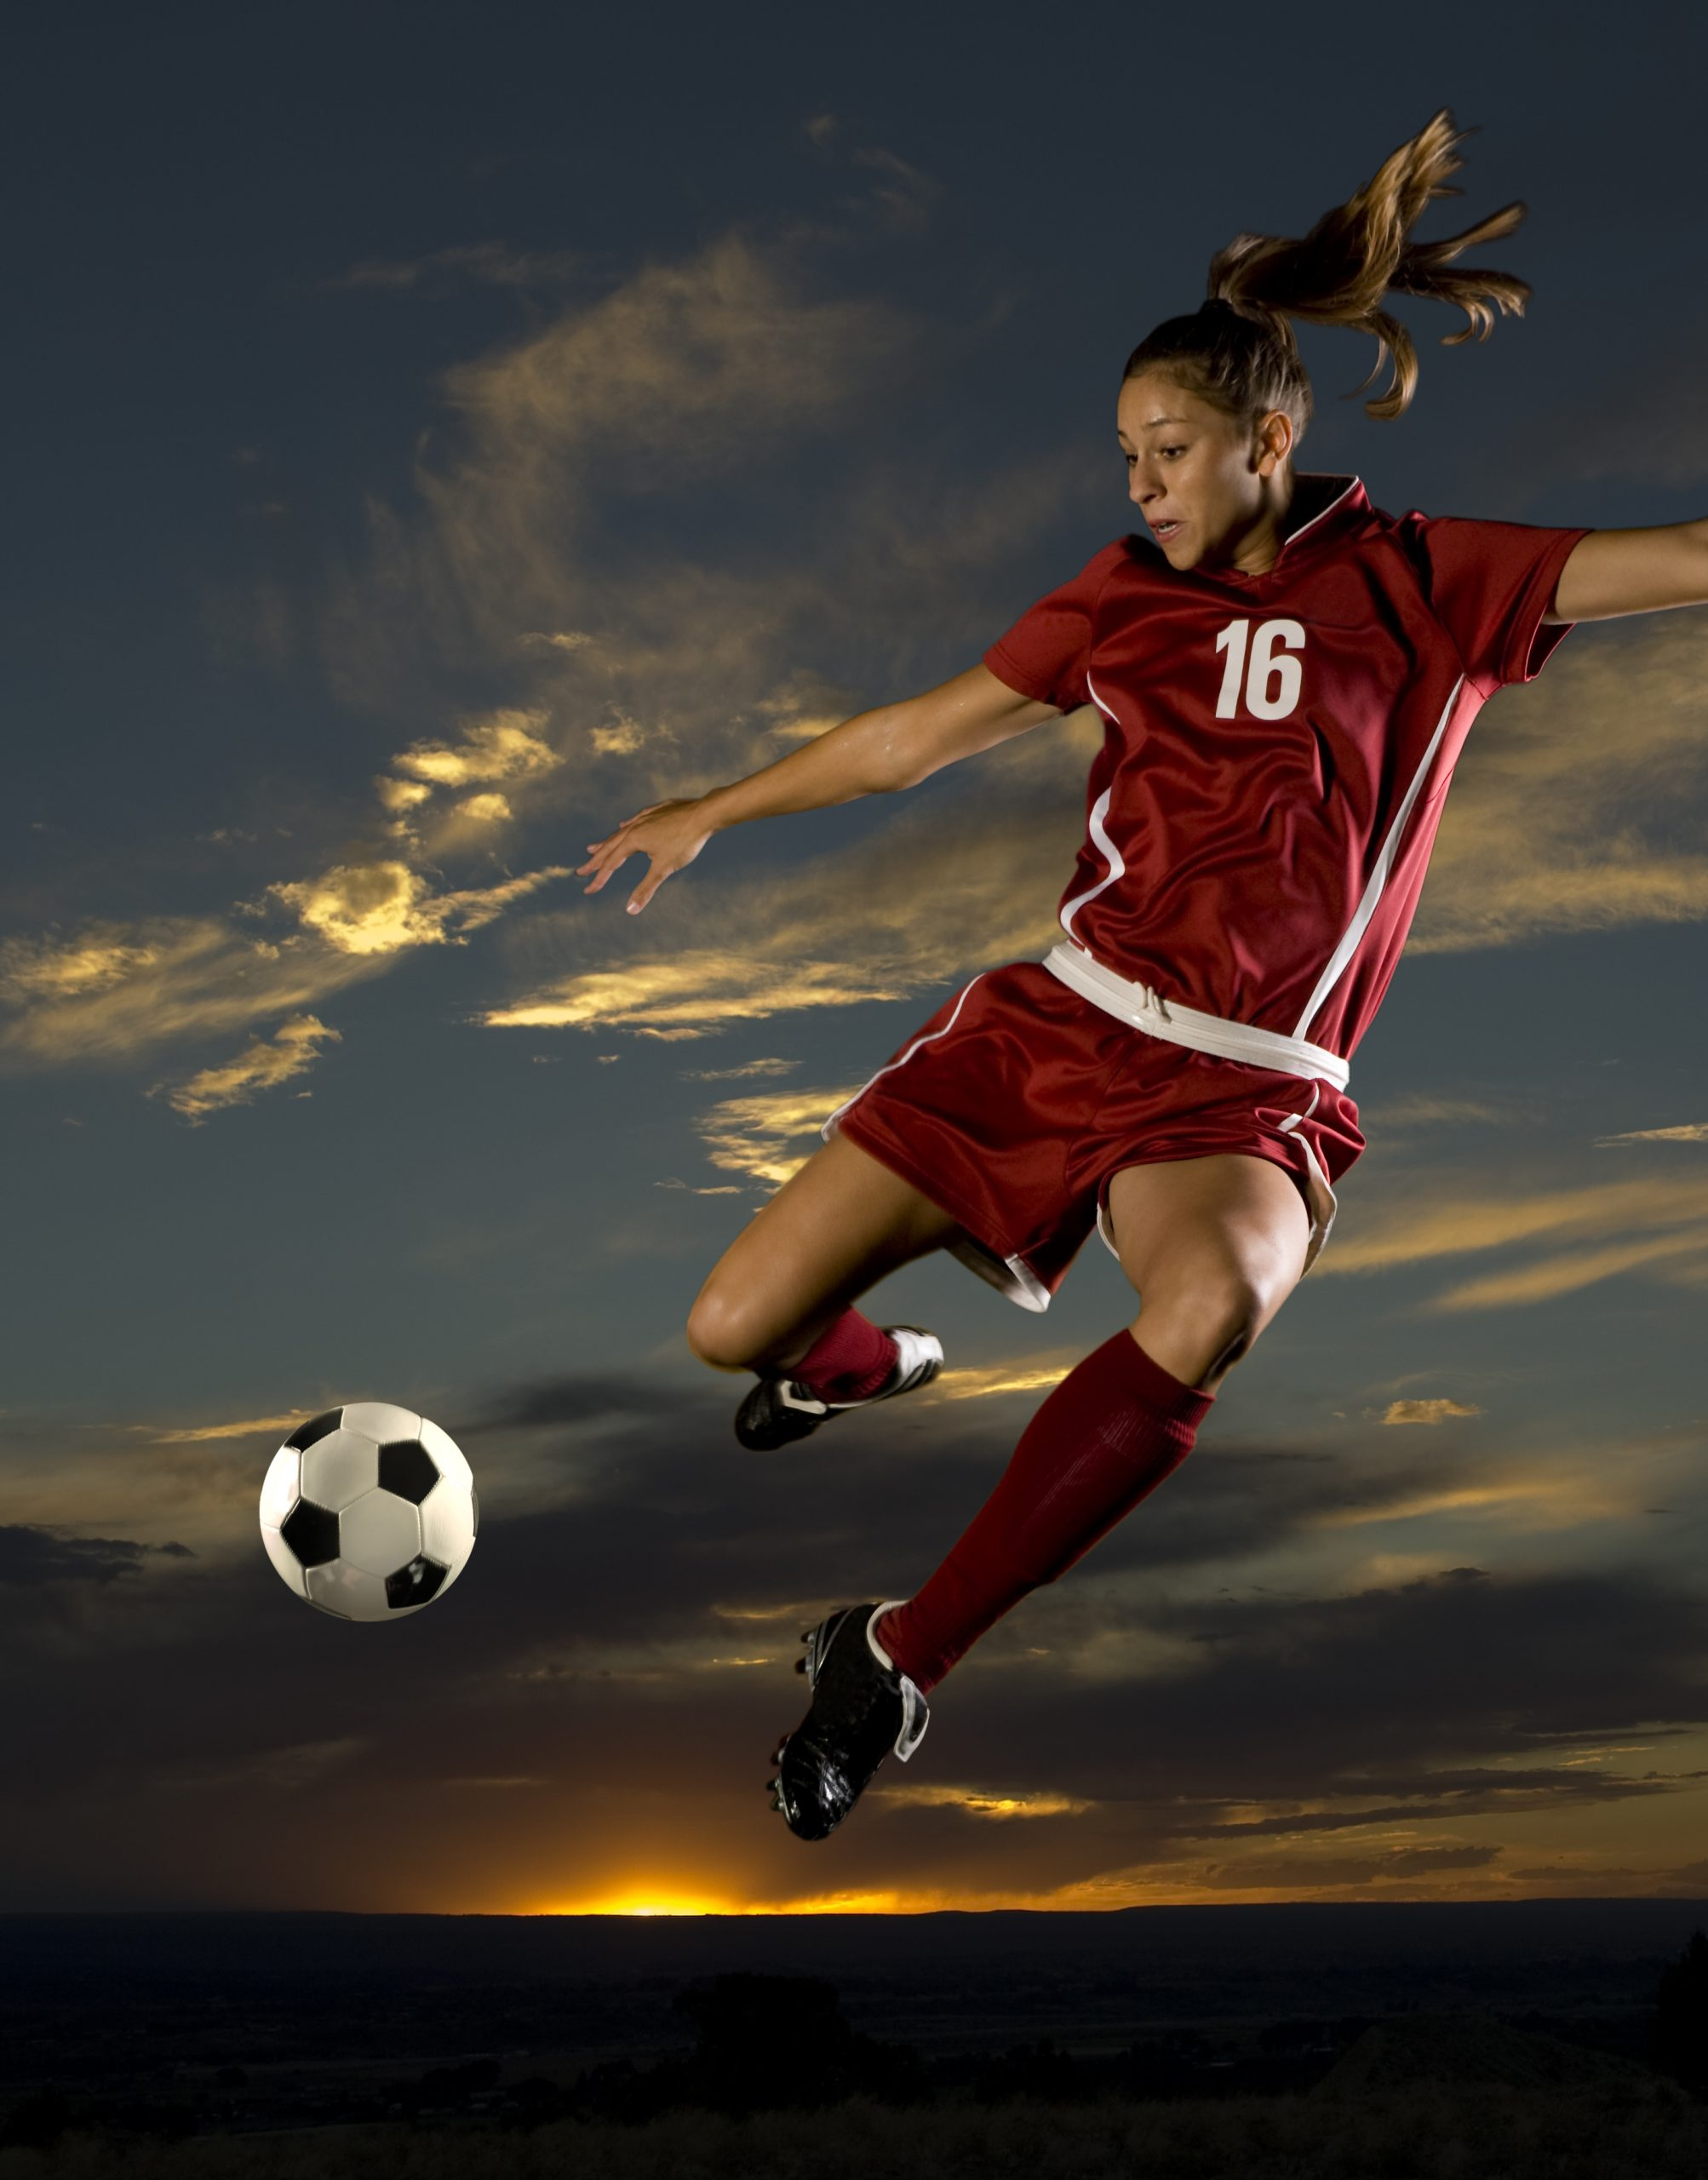 Soccer Girls by Con Boutsianis